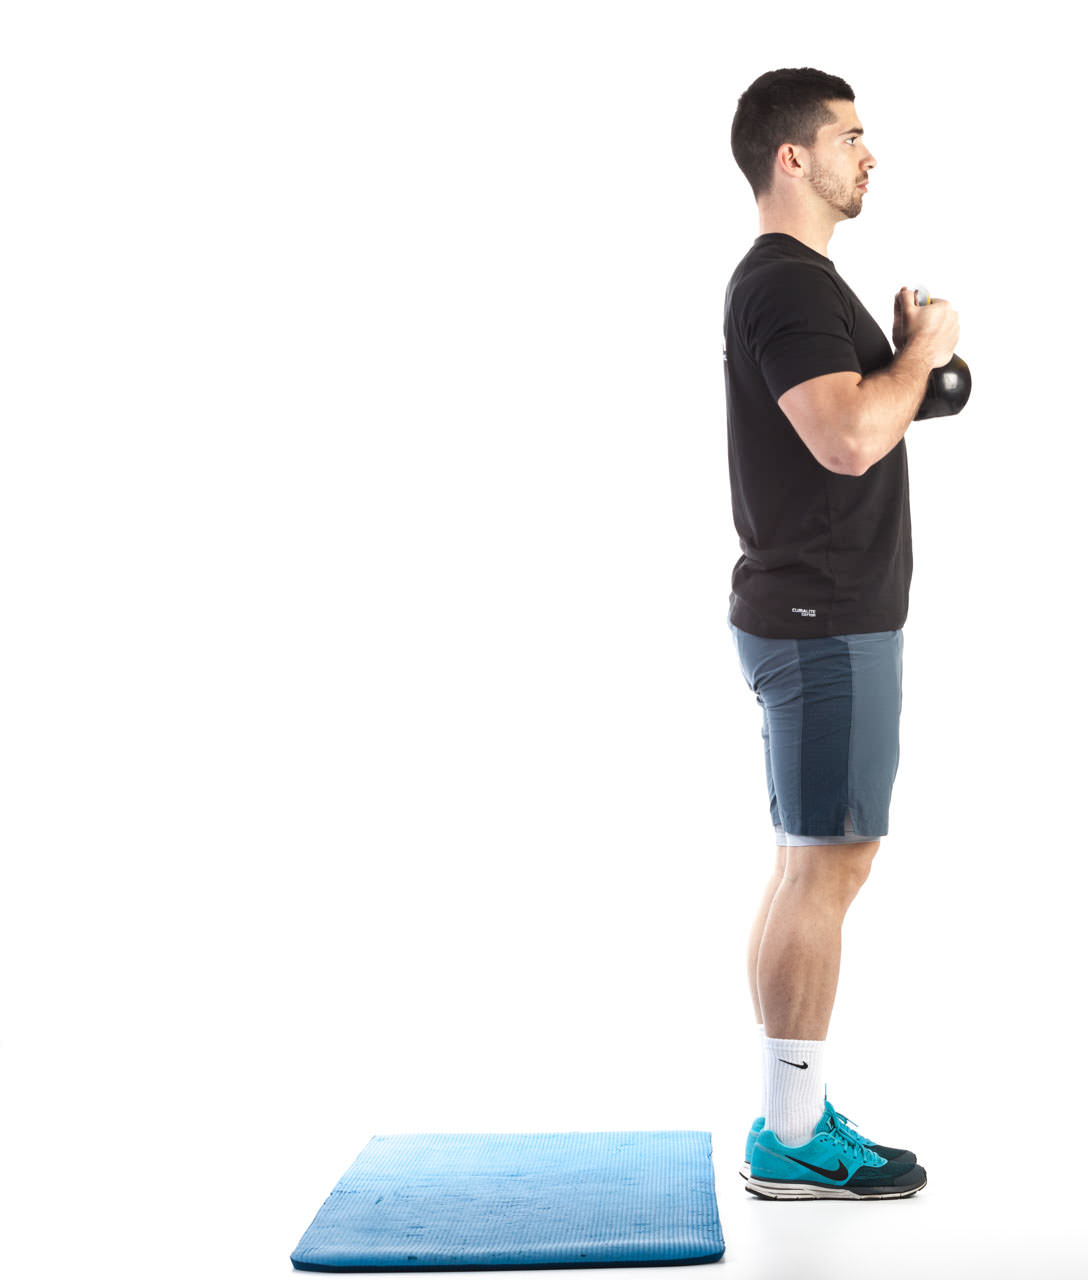 Kettlebell Kneeling to Stand-Up frame #3